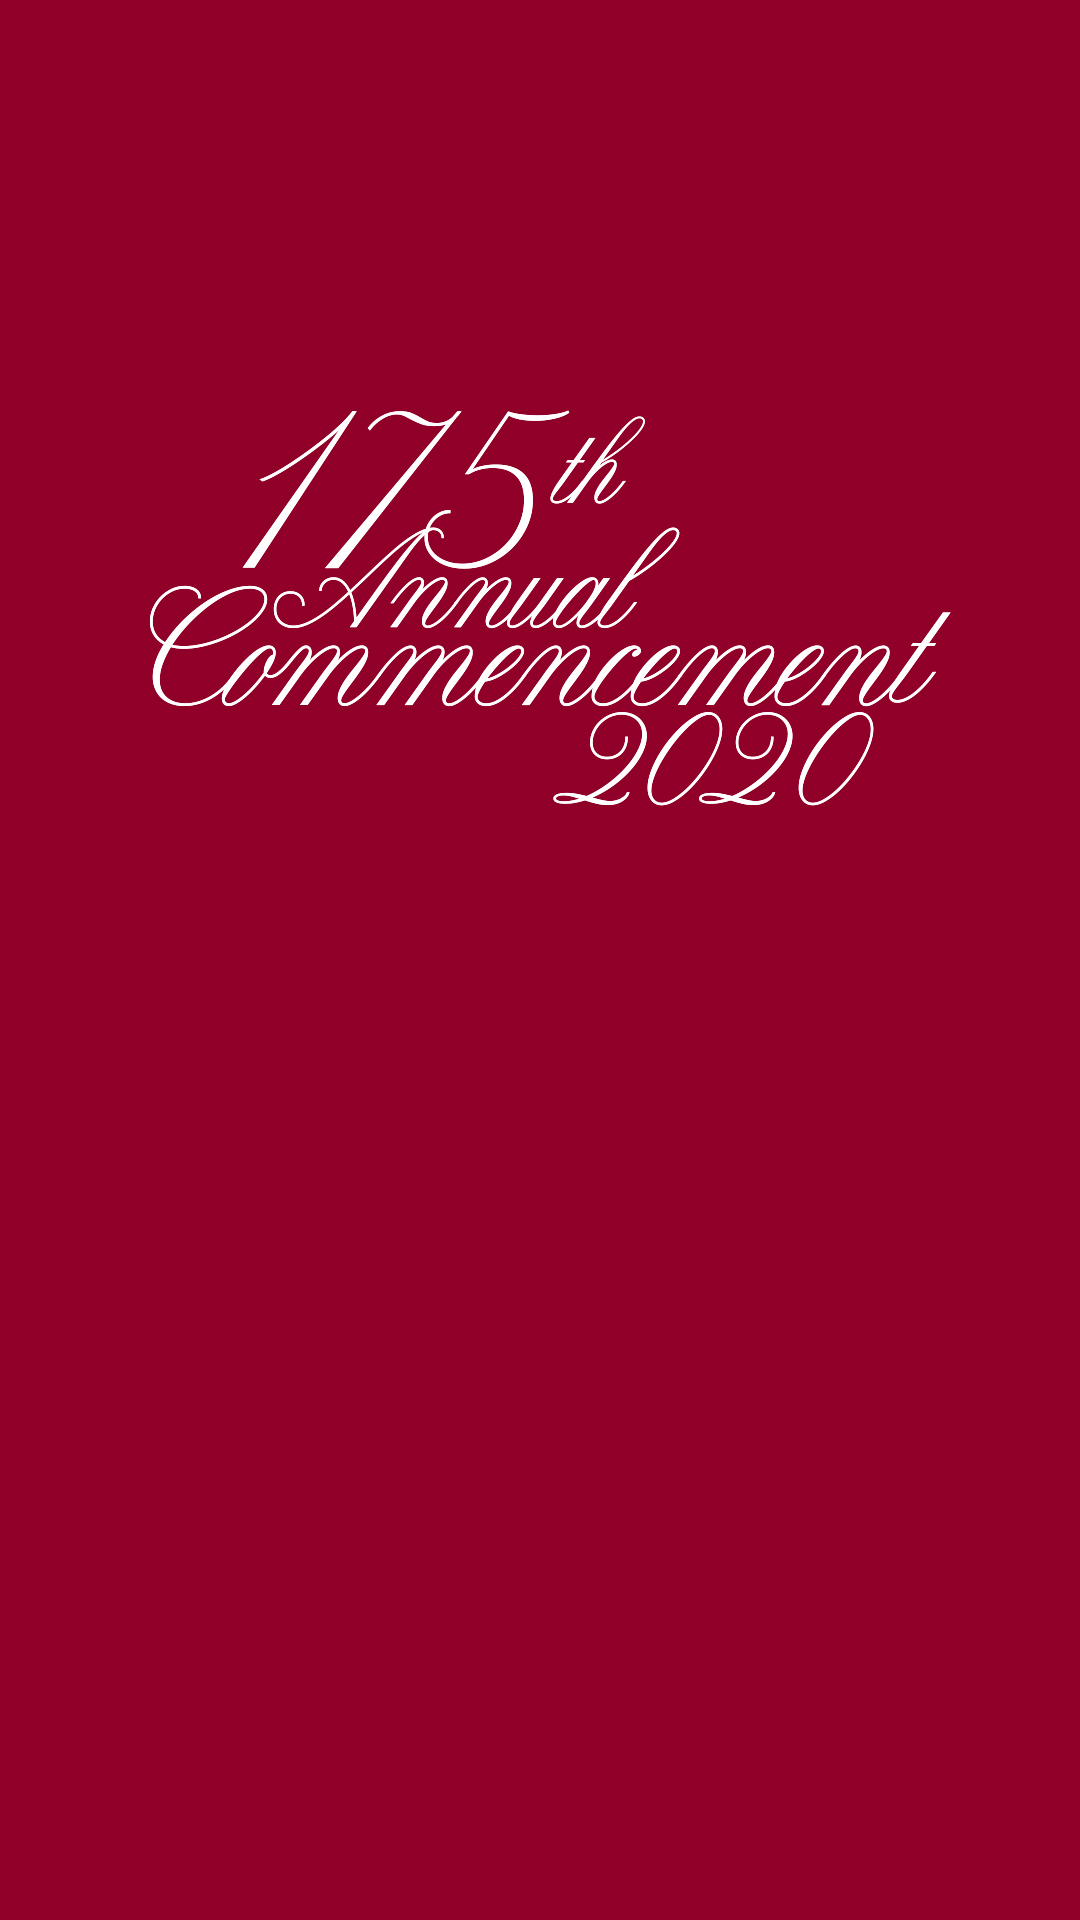 175th Commencement Vertical Zoom Background